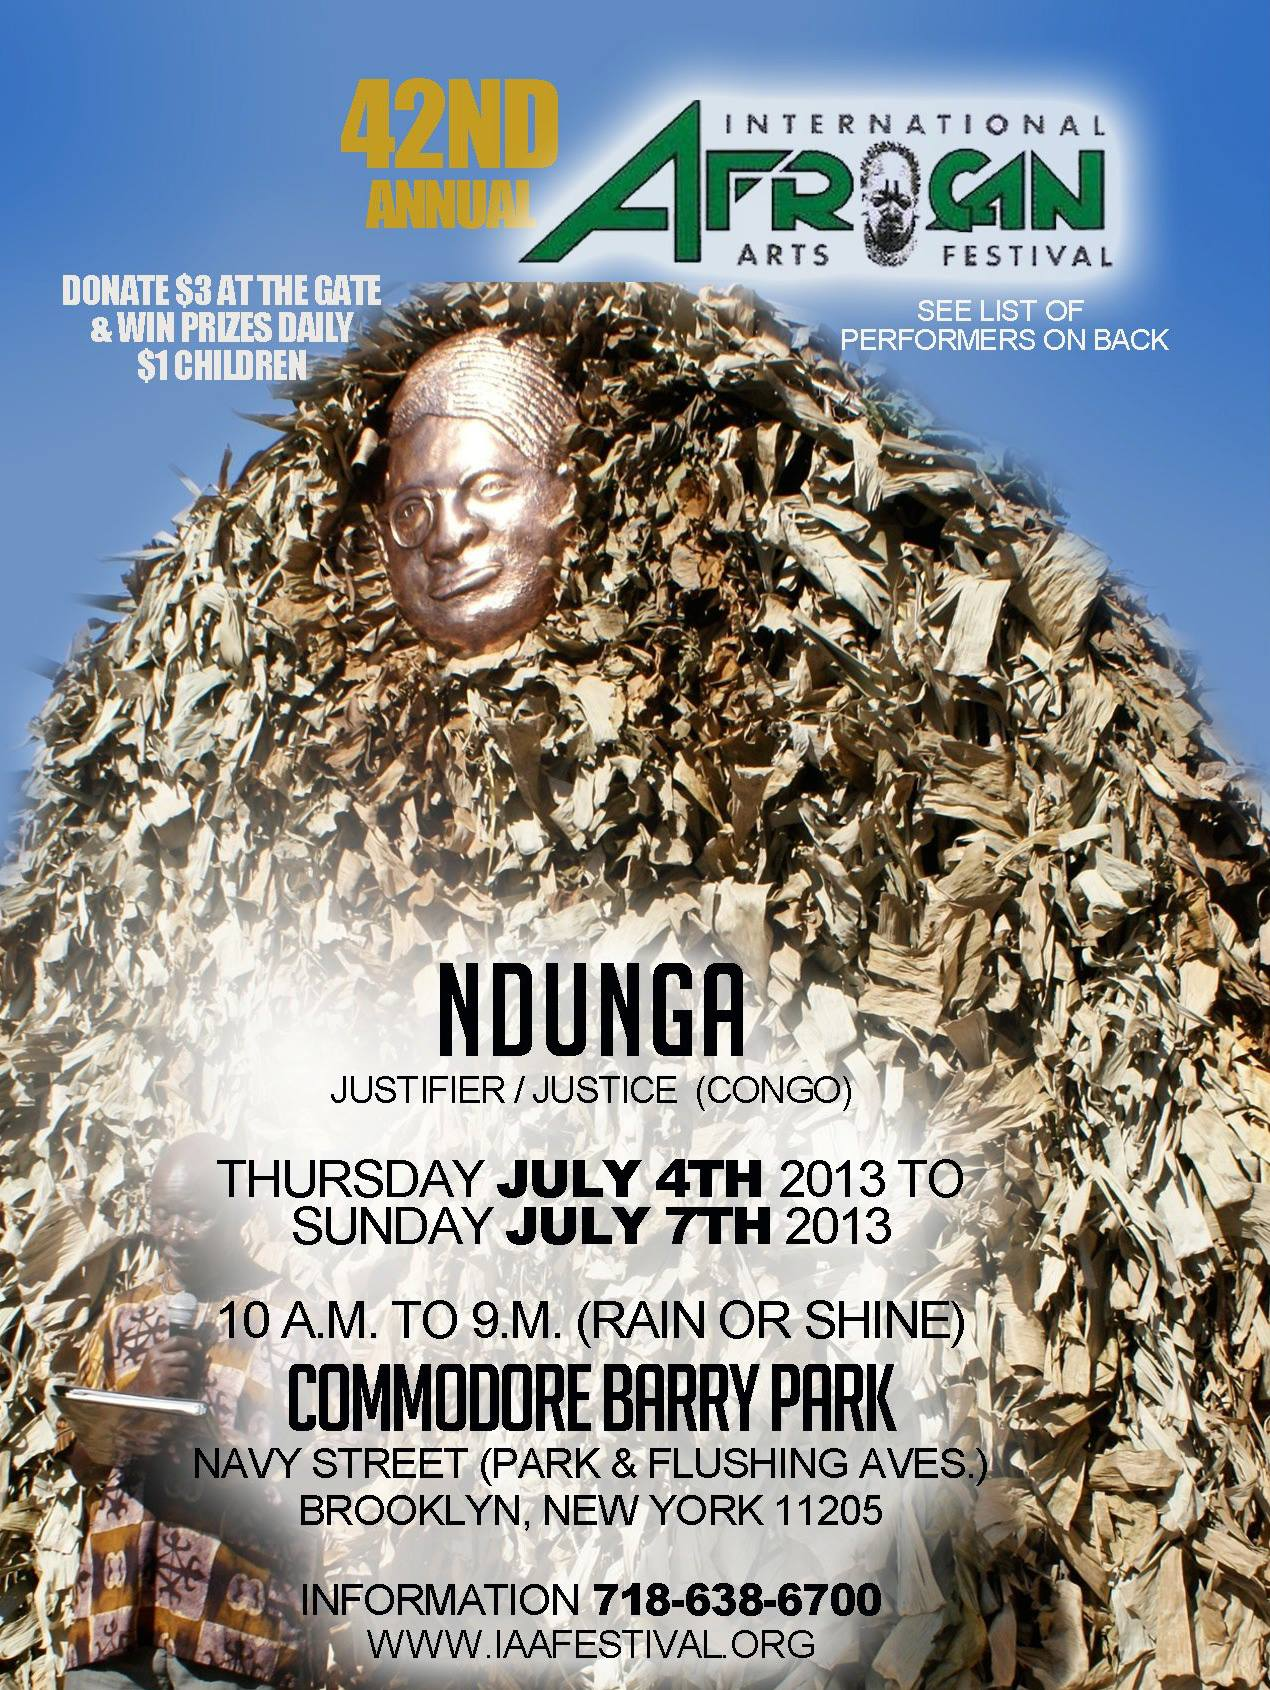 The 42nd Annual International African Arts Festival will be held at Commodore Barry Park (Park & Flushing Aves). July 4, 2013- July 7, 2013, from 10am-9pm every day, rain or shine. Bring your summer dresses and rain boots because its going to be hot!